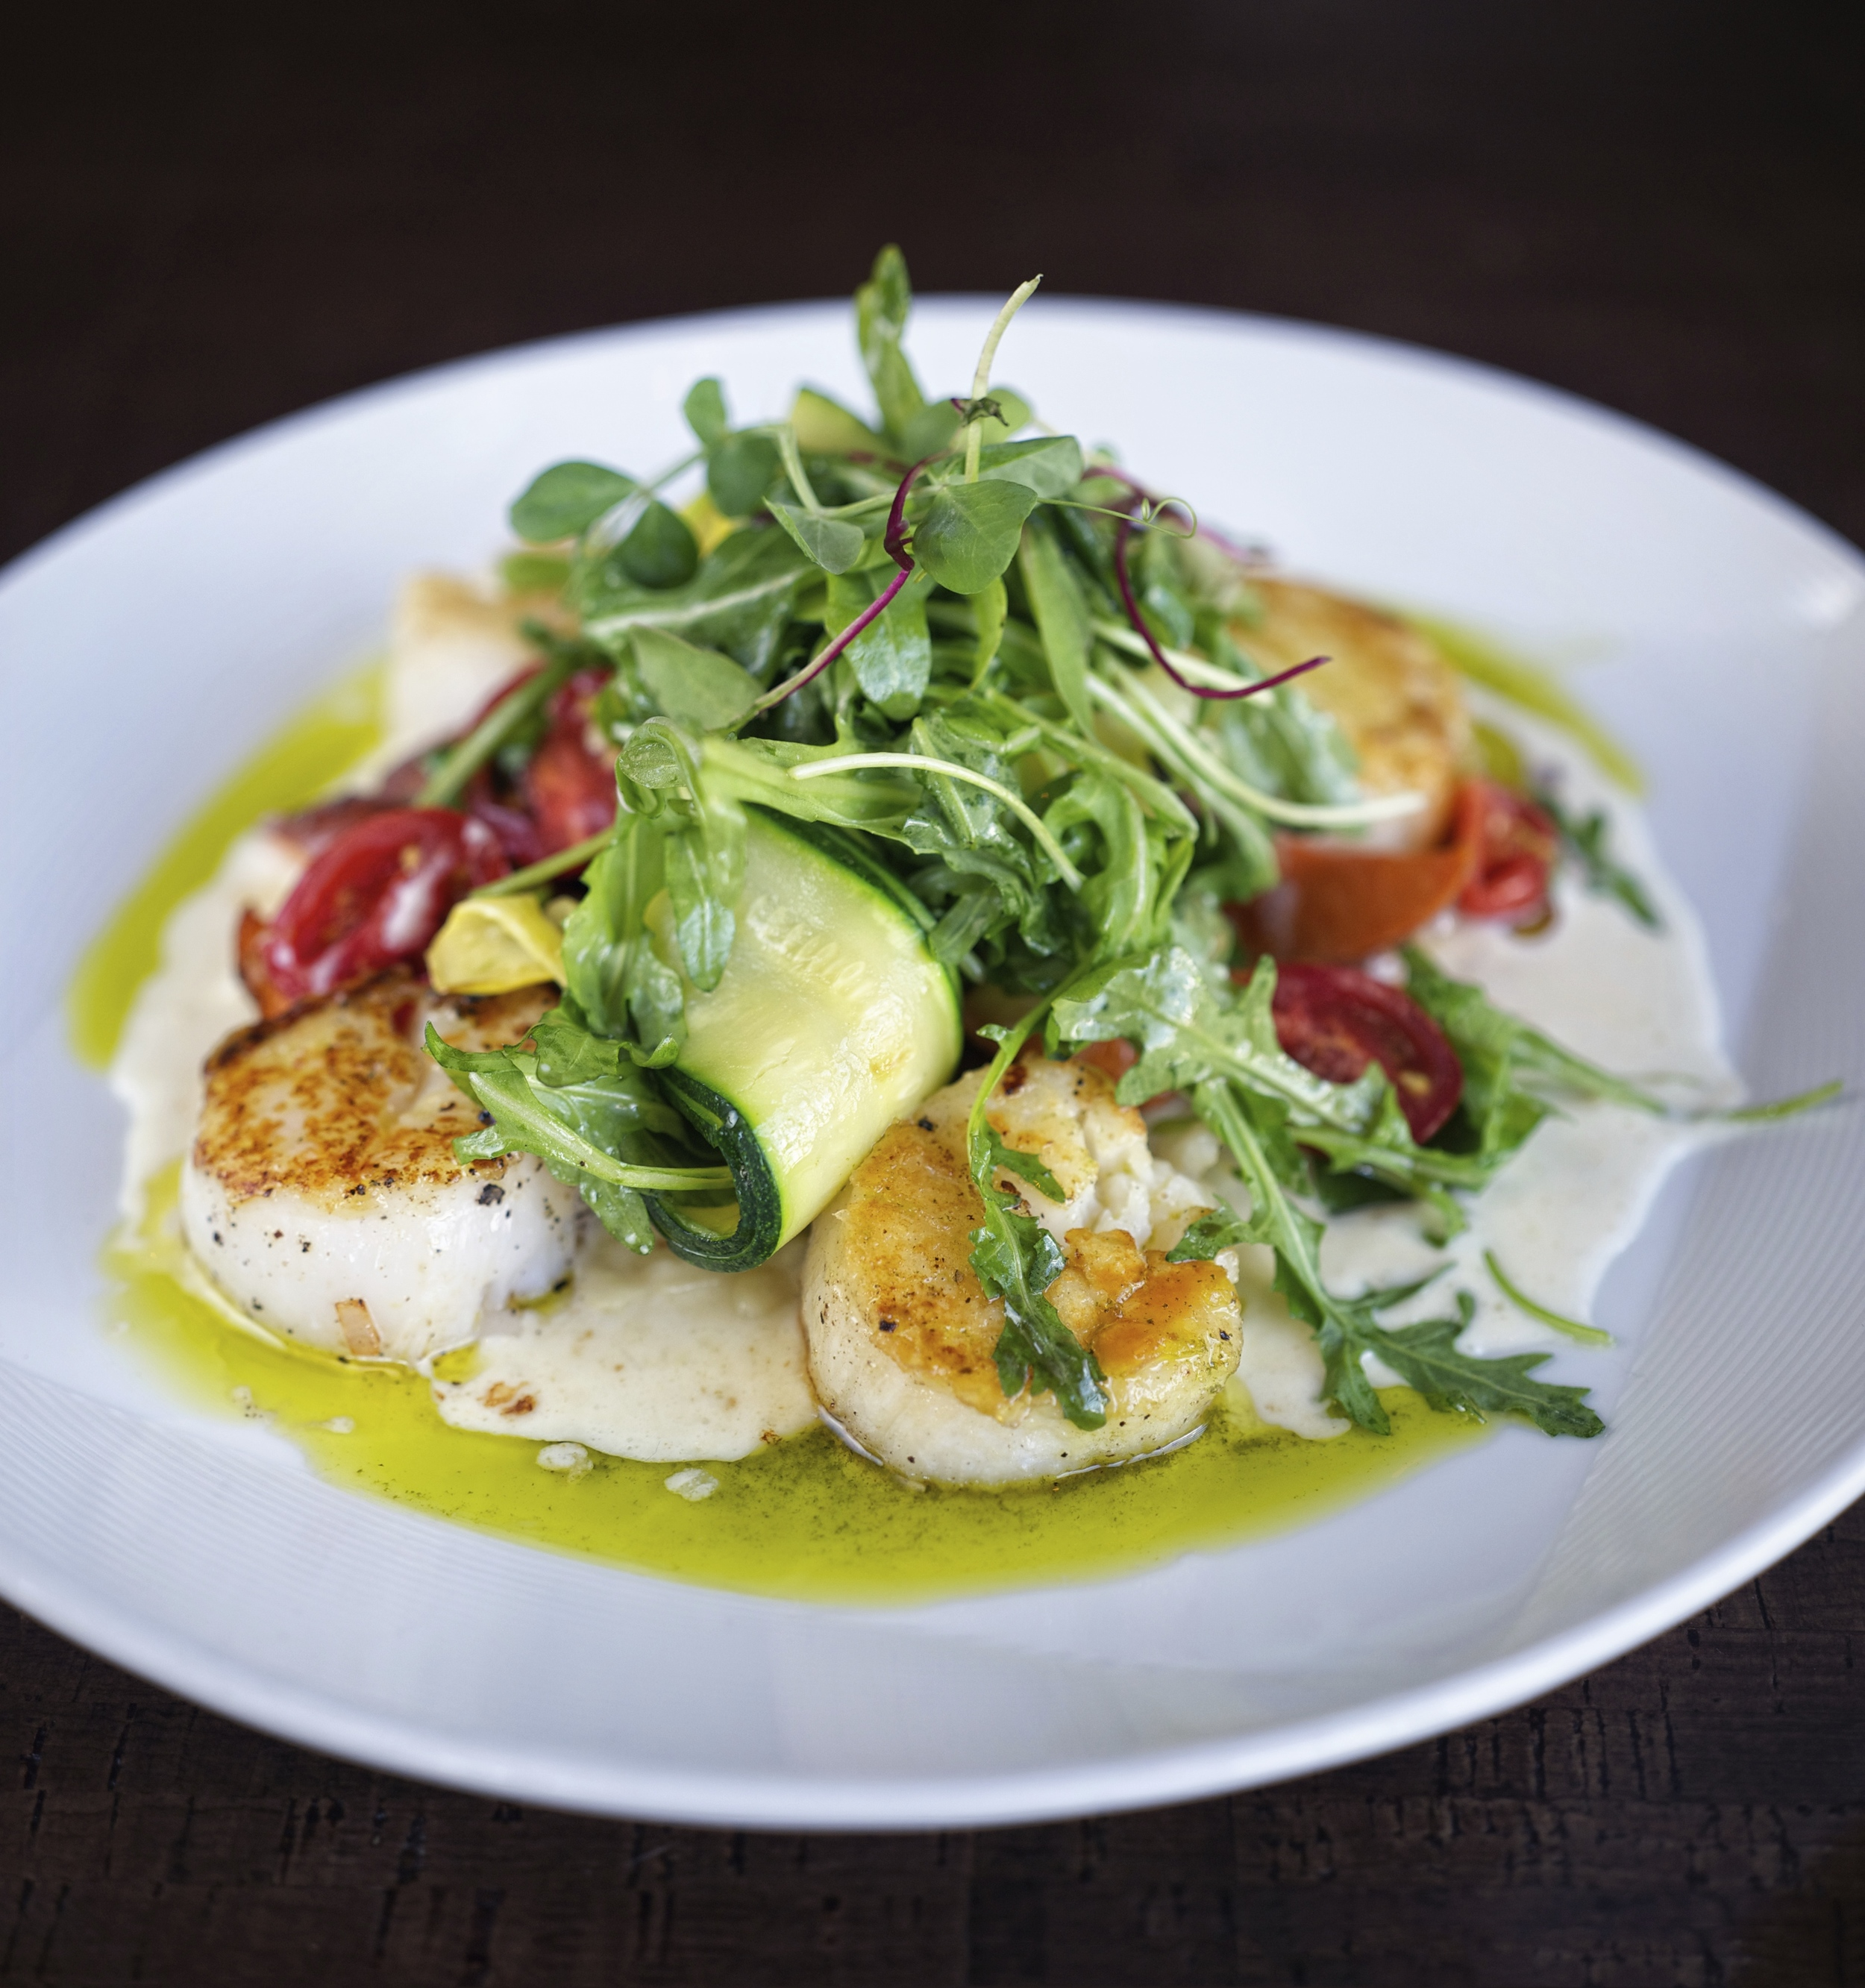 Scallops at Hotel Andaluz.jpg